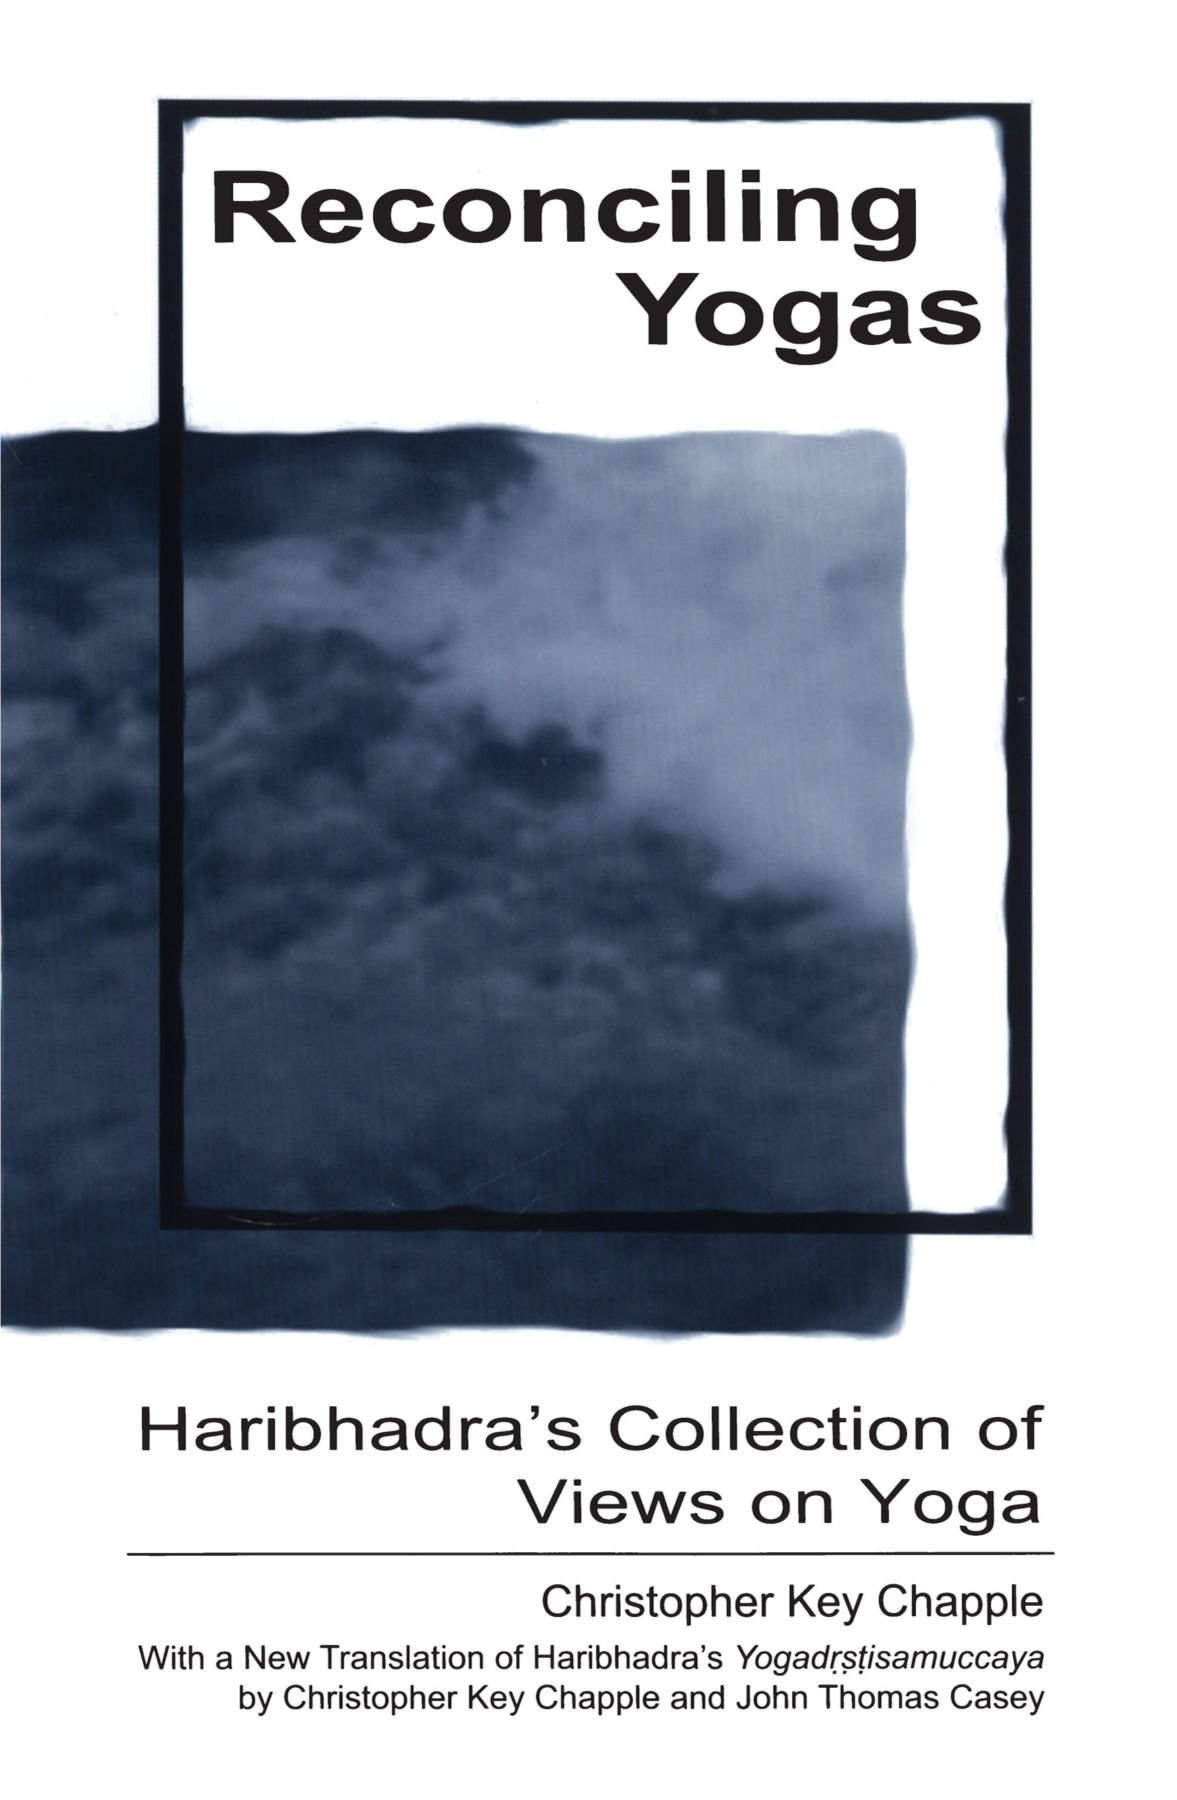 Download Reconciling Yogas: Haribhadra's Collection of Views on Yoga With a New Translation of Haribhadra's Yogadrstisamuccaya by Christopher Key Chapple and John Thomas Casey pdf